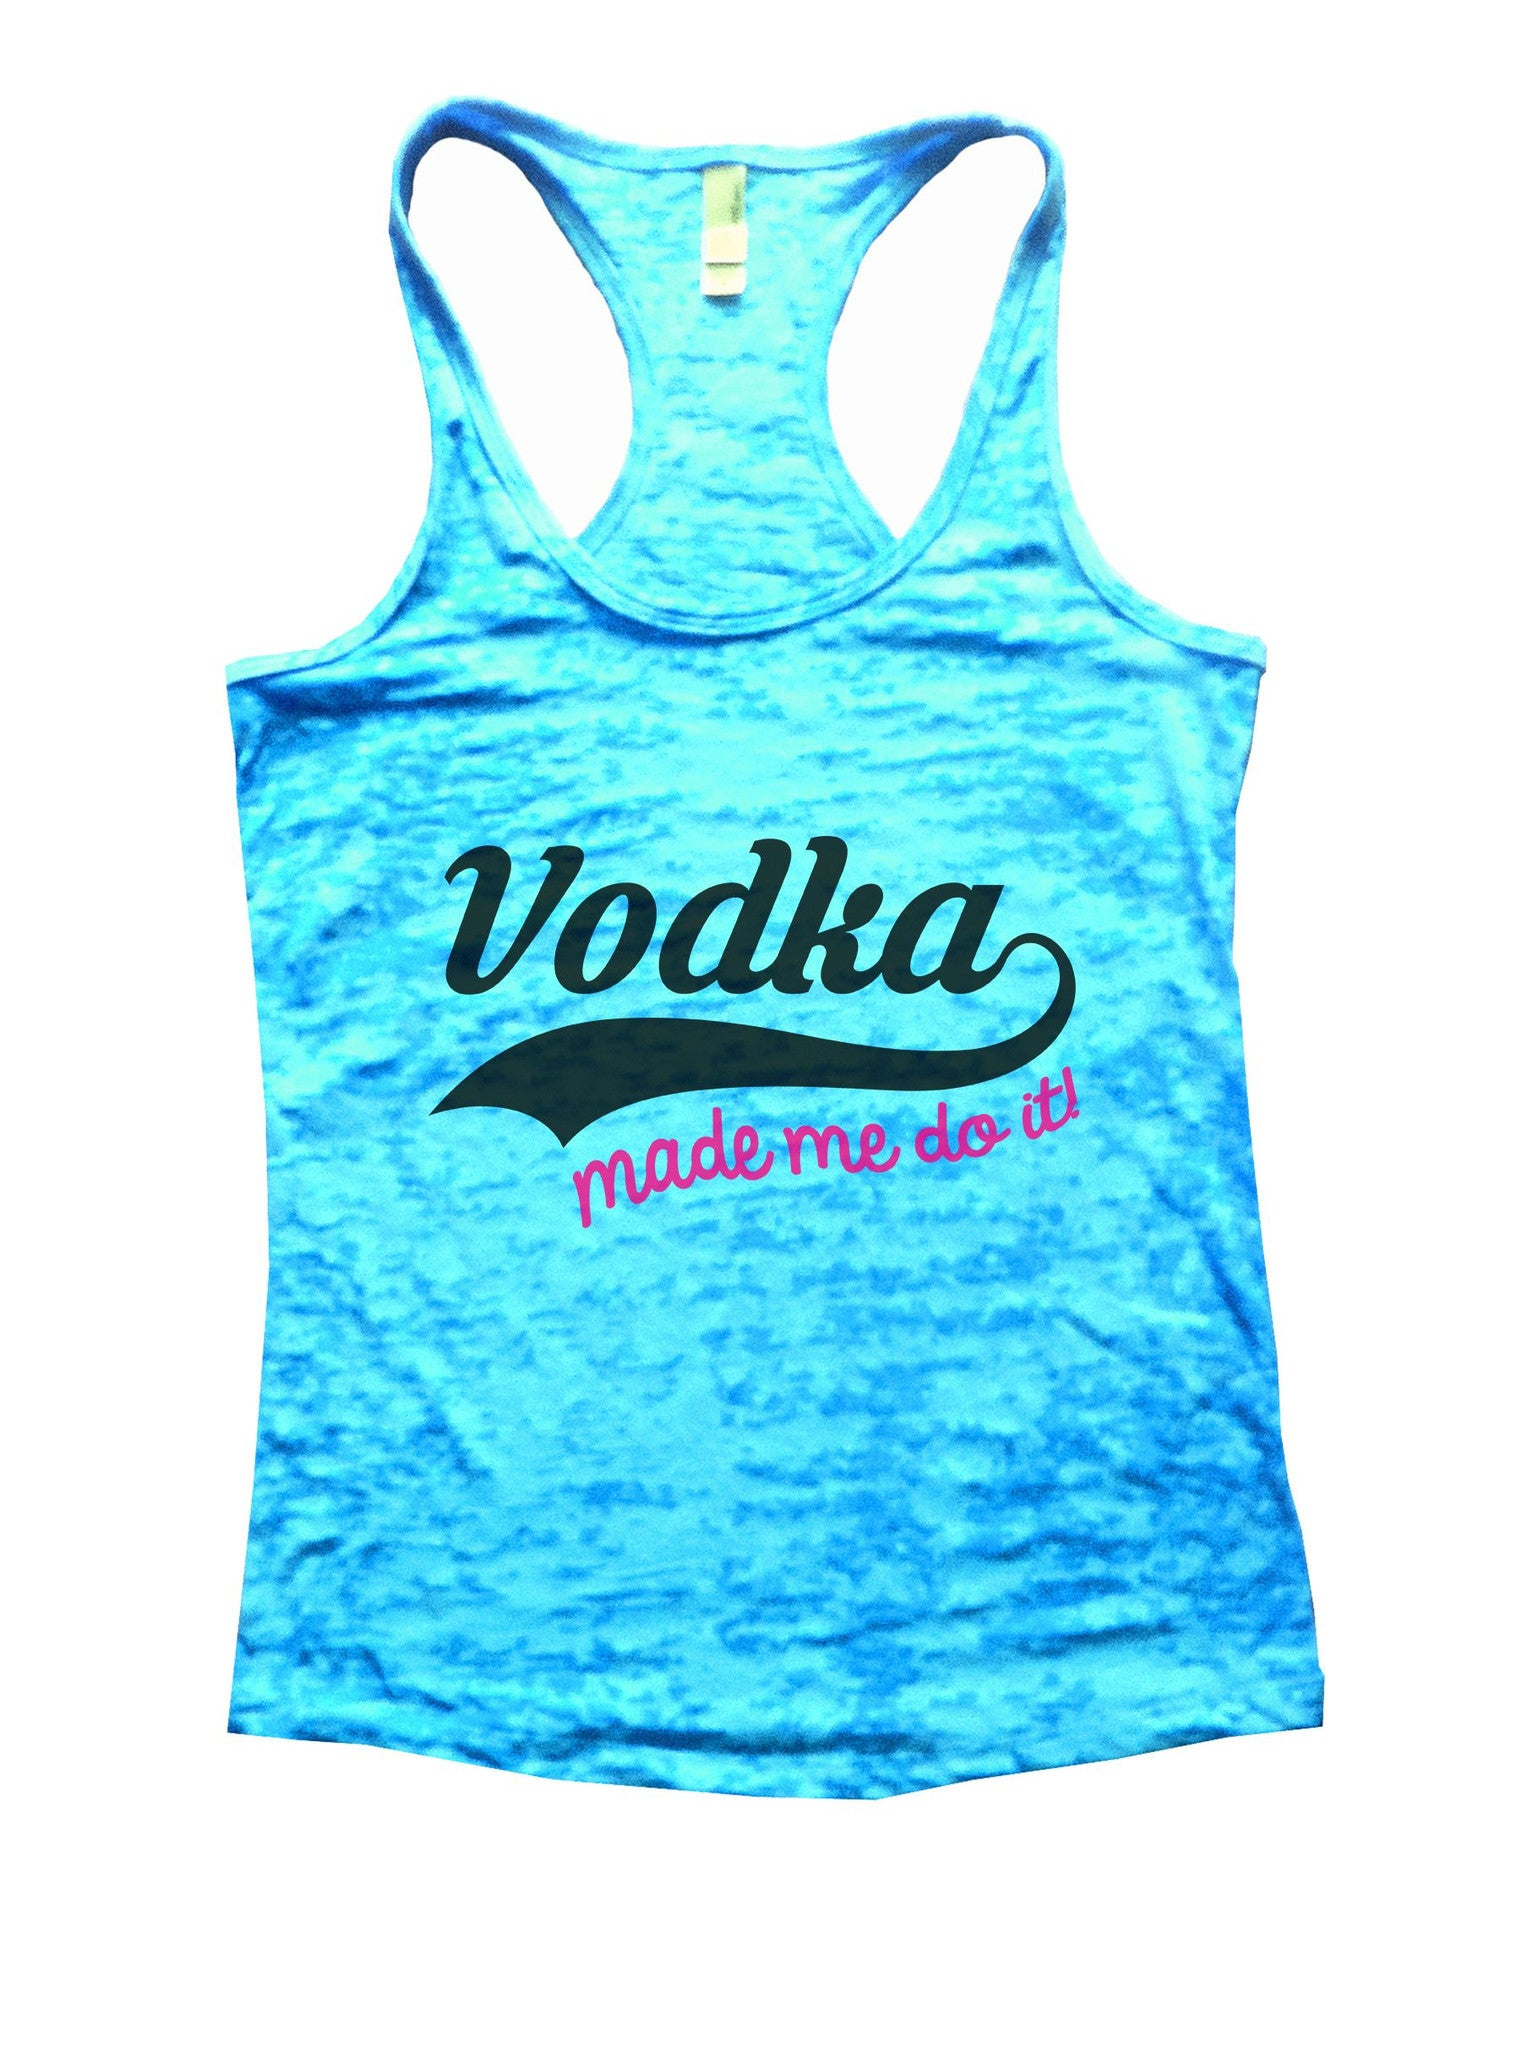 Vodka Made Me Do It! Burnout Tank Top By BurnoutTankTops.com - 1083 - Funny Shirts Tank Tops Burnouts and Triblends  - 4